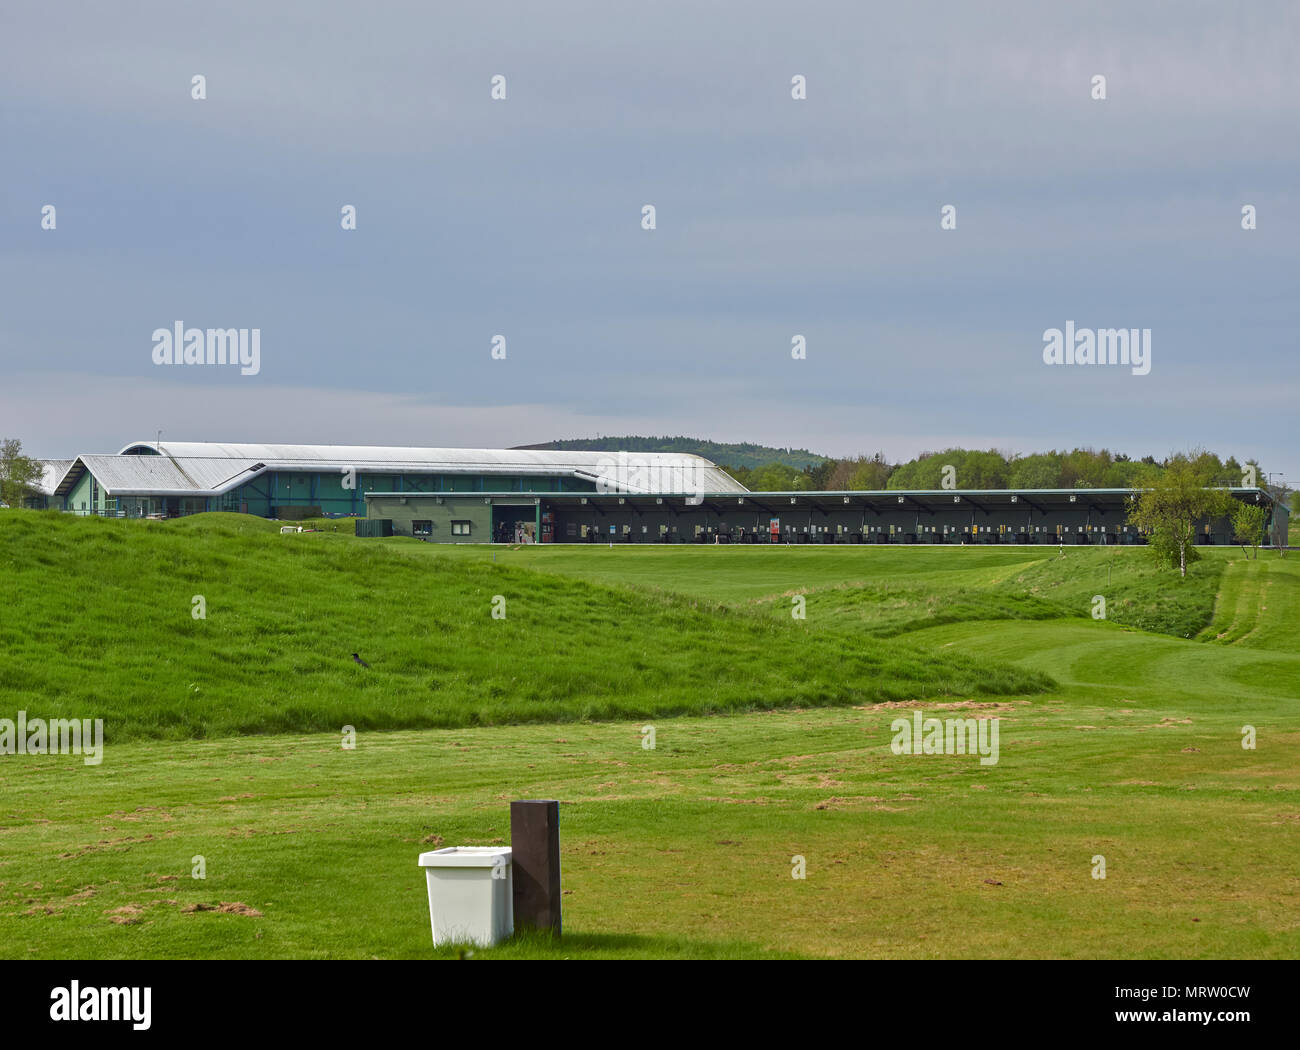 The Drumoig Golf Centre with its 24 Driving Range Bays near Dundee in Fife, Scotland. - Stock Image